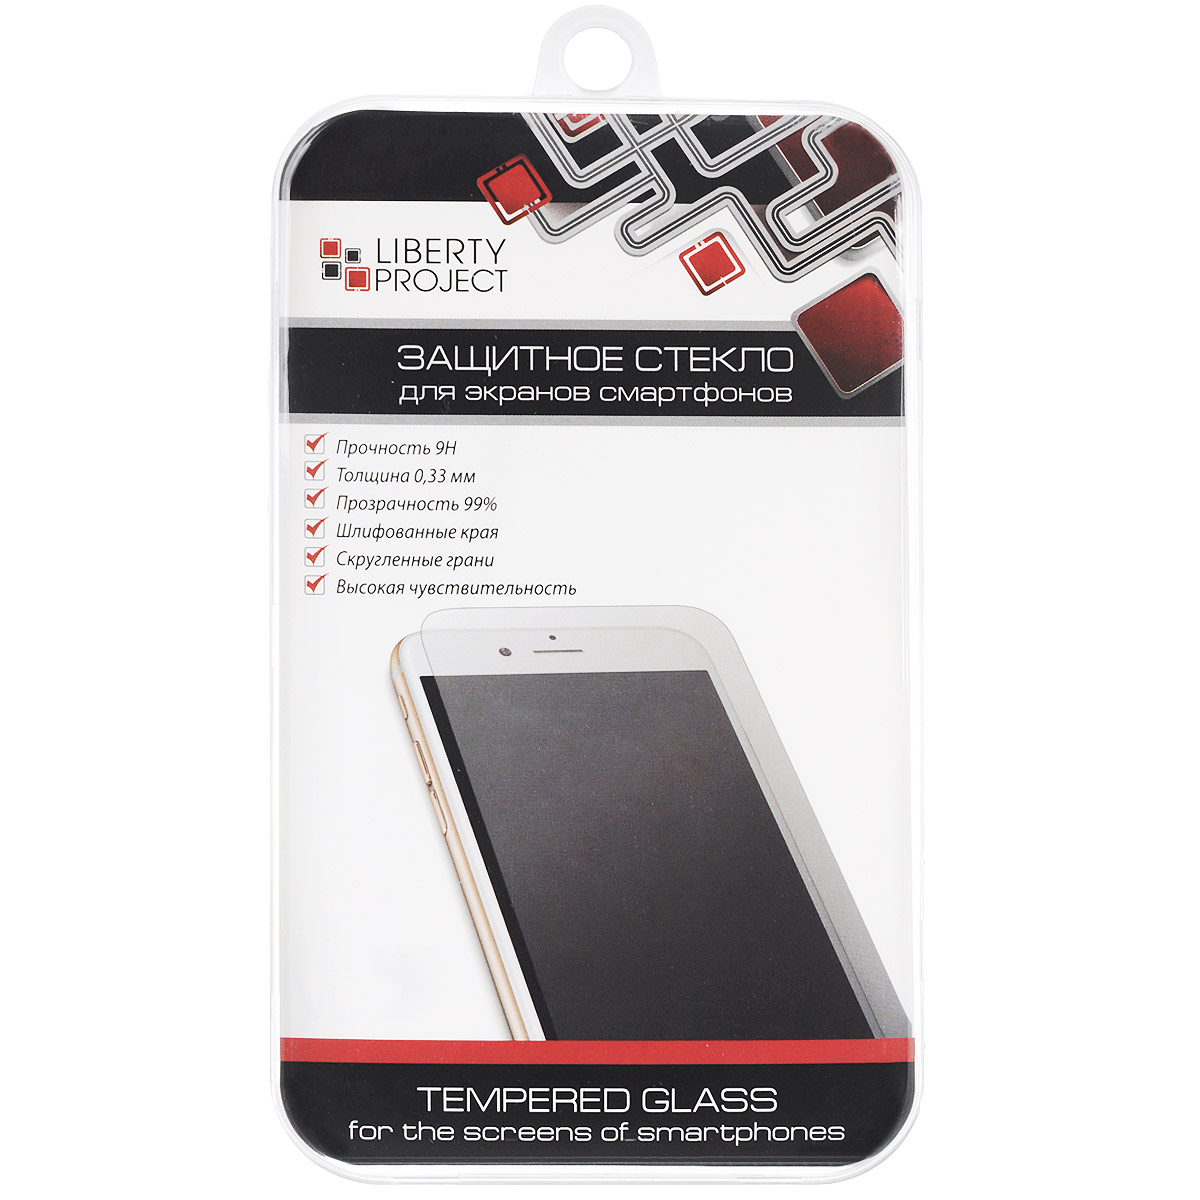 Liberty Project Tempered Glass защитное стекло для iPhone 5/5s/5c, Clear (0.33 мм) liberty project tempered glass защитное стекло для alcatel onetouch idol 4s 6070k 0 33 мм